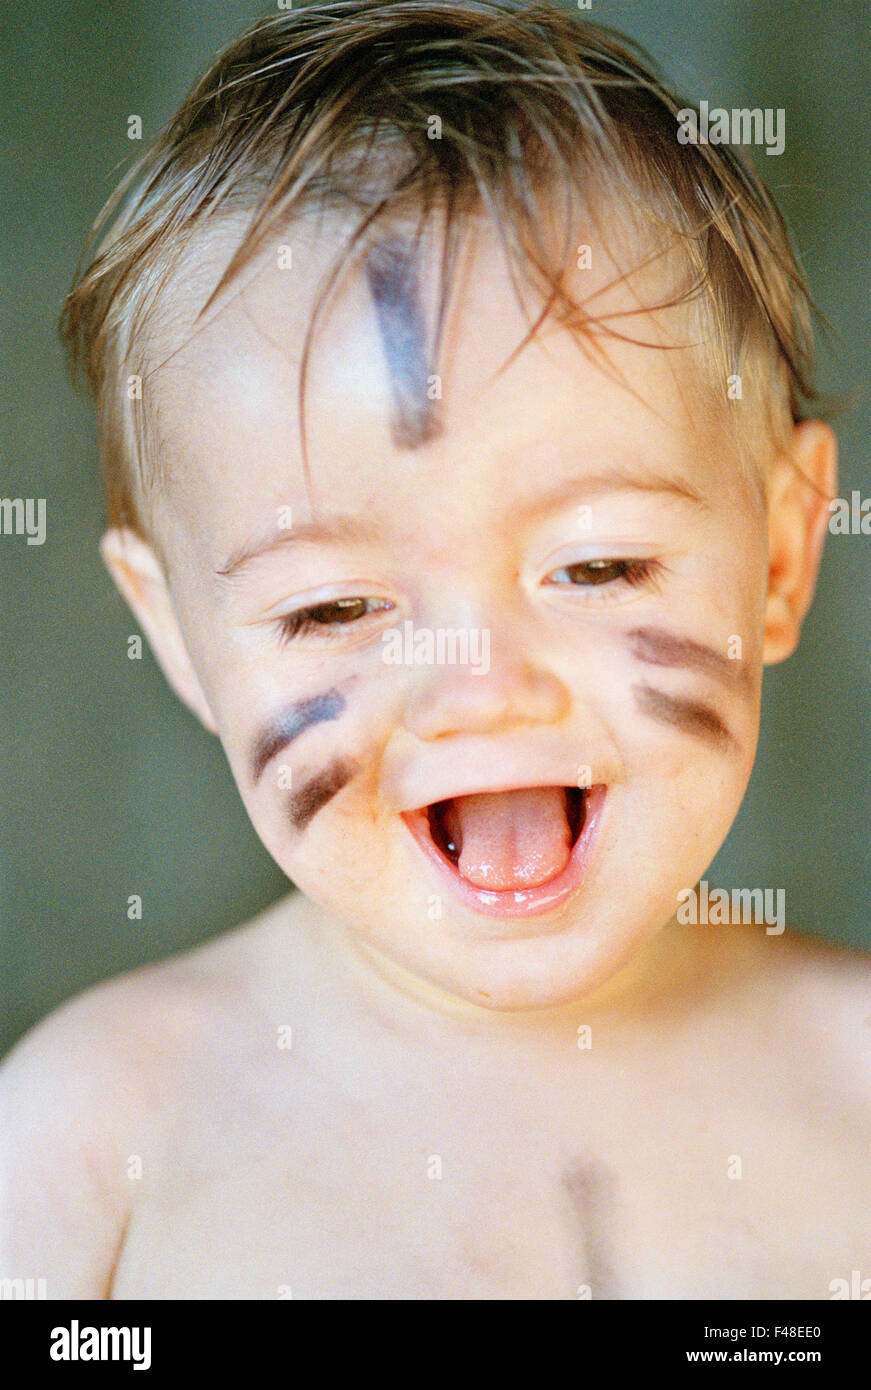 A little boy with a painted face, Sweden. - Stock Image